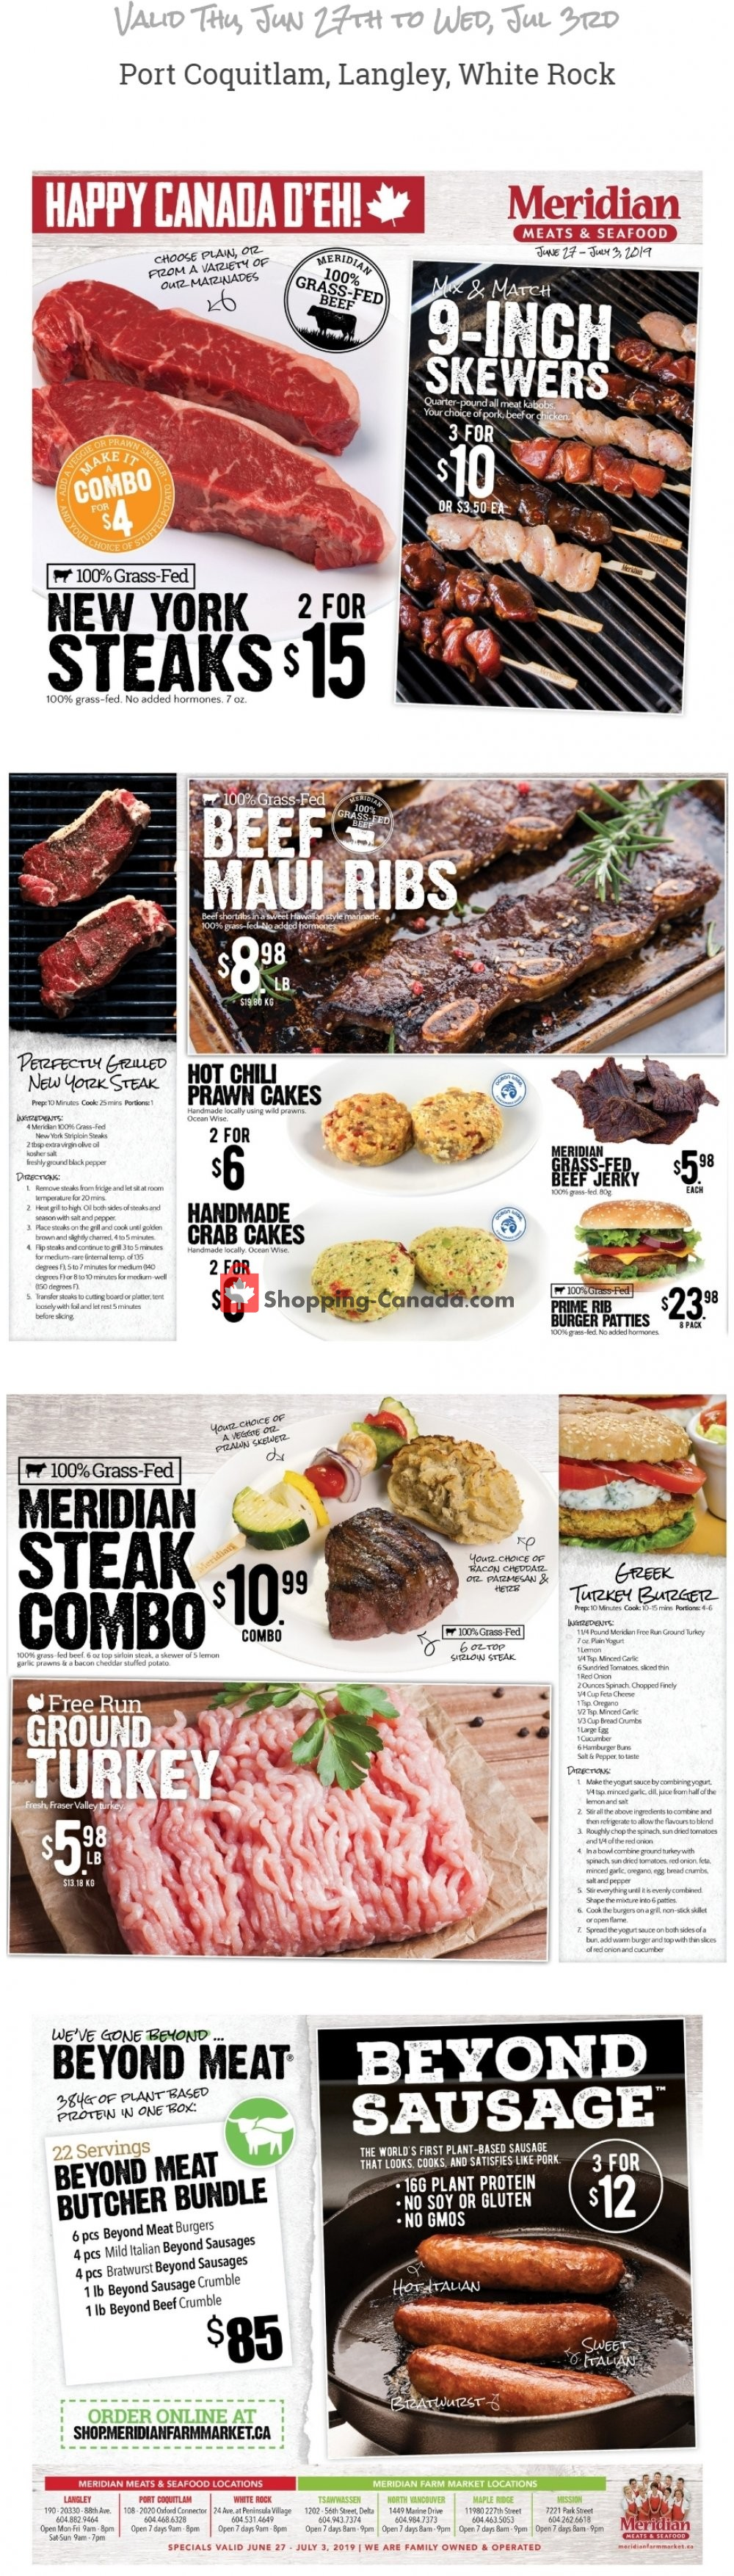 Flyer Meridian Meats & Meridian Farm Market Canada - from Thursday June 27, 2019 to Wednesday July 3, 2019